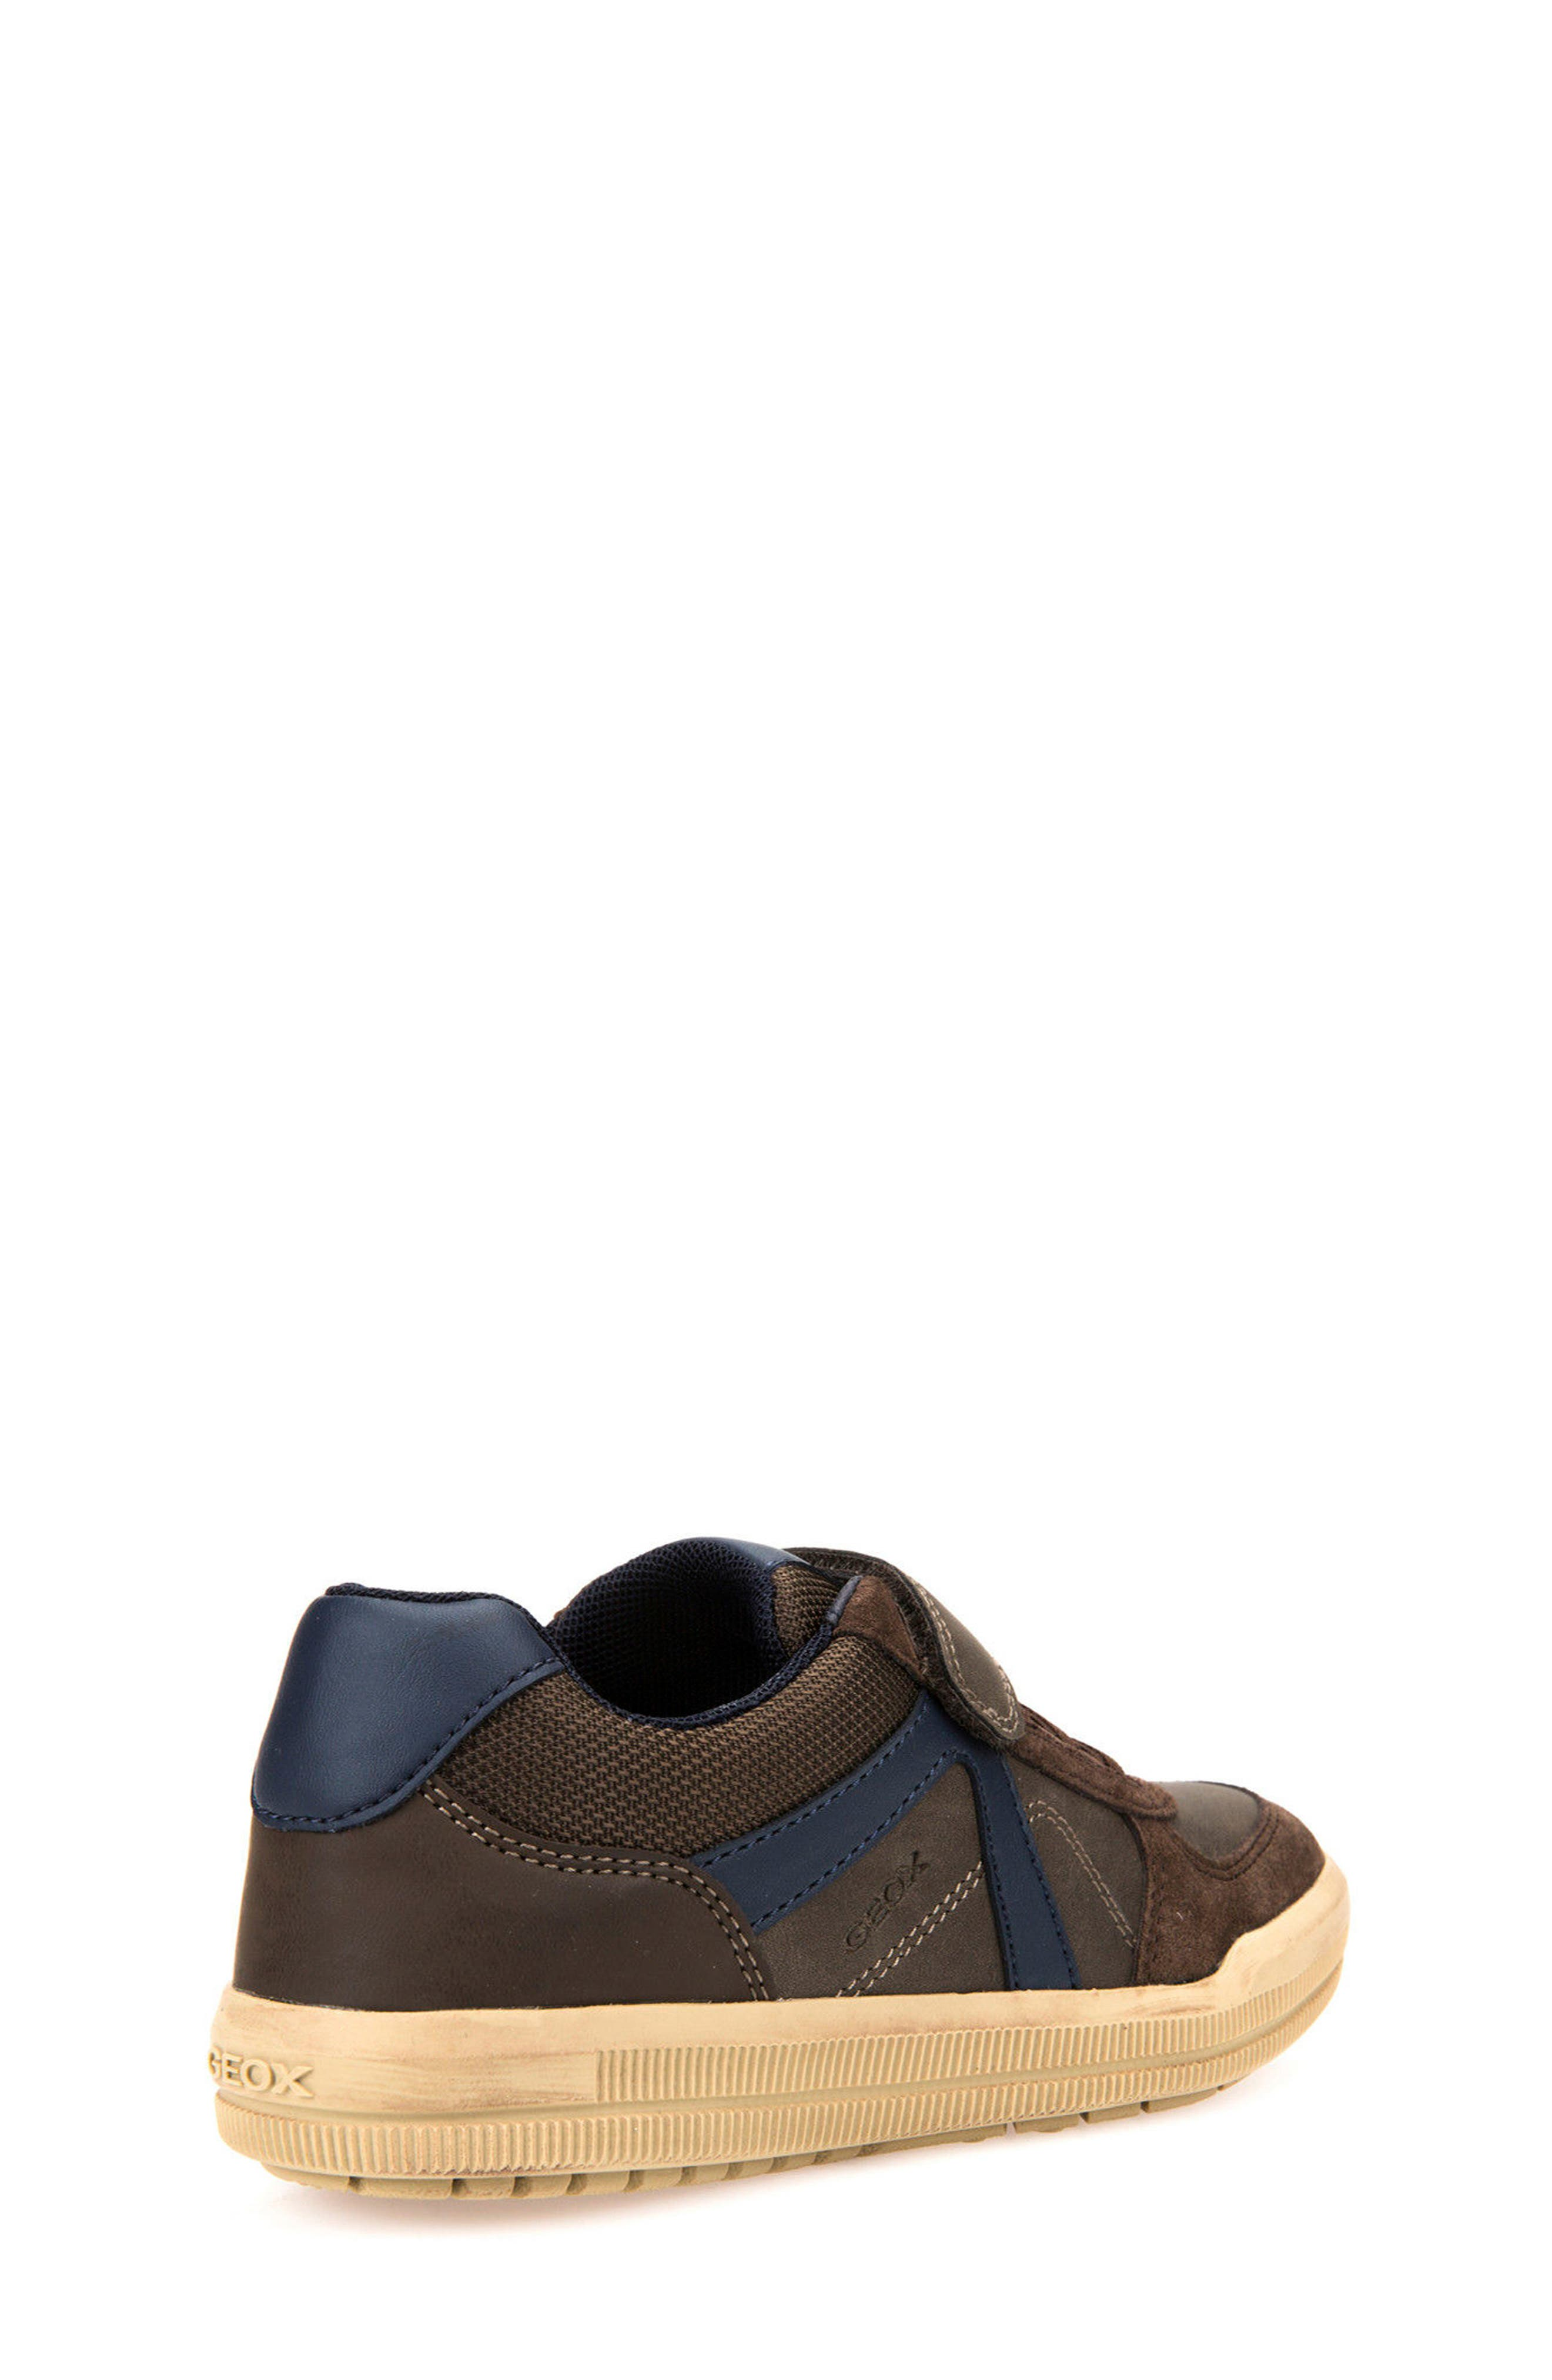 Arzach Low Top Sneaker,                             Alternate thumbnail 2, color,                             200